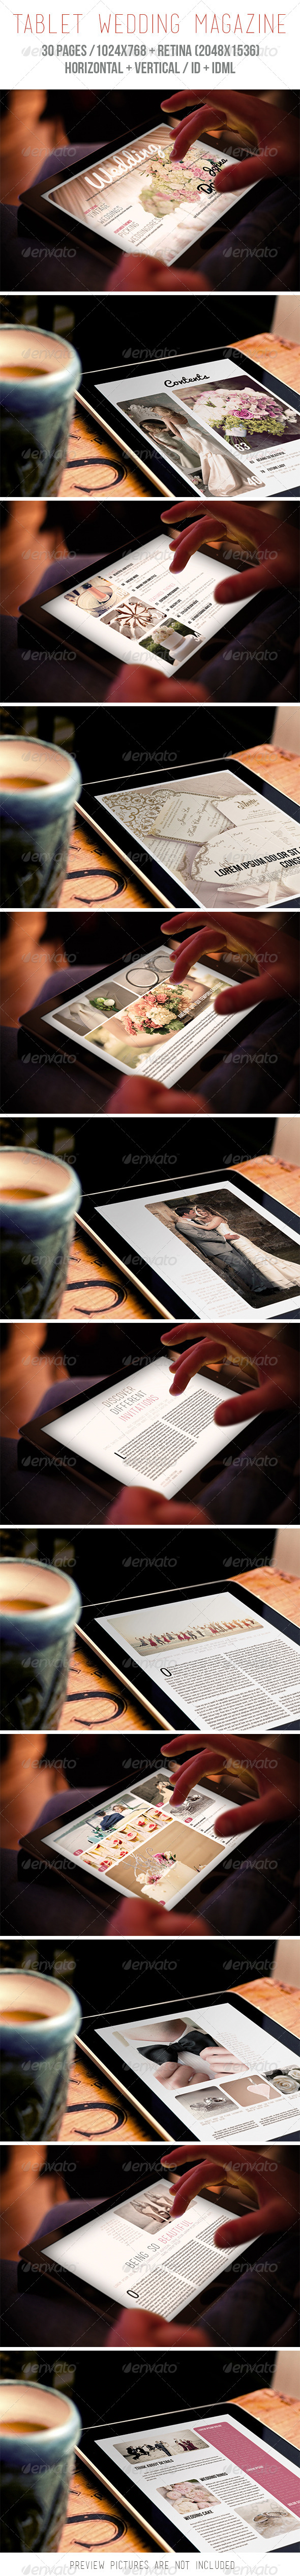 iPad & Tablet Wedding Magazine - Digital Magazines ePublishing